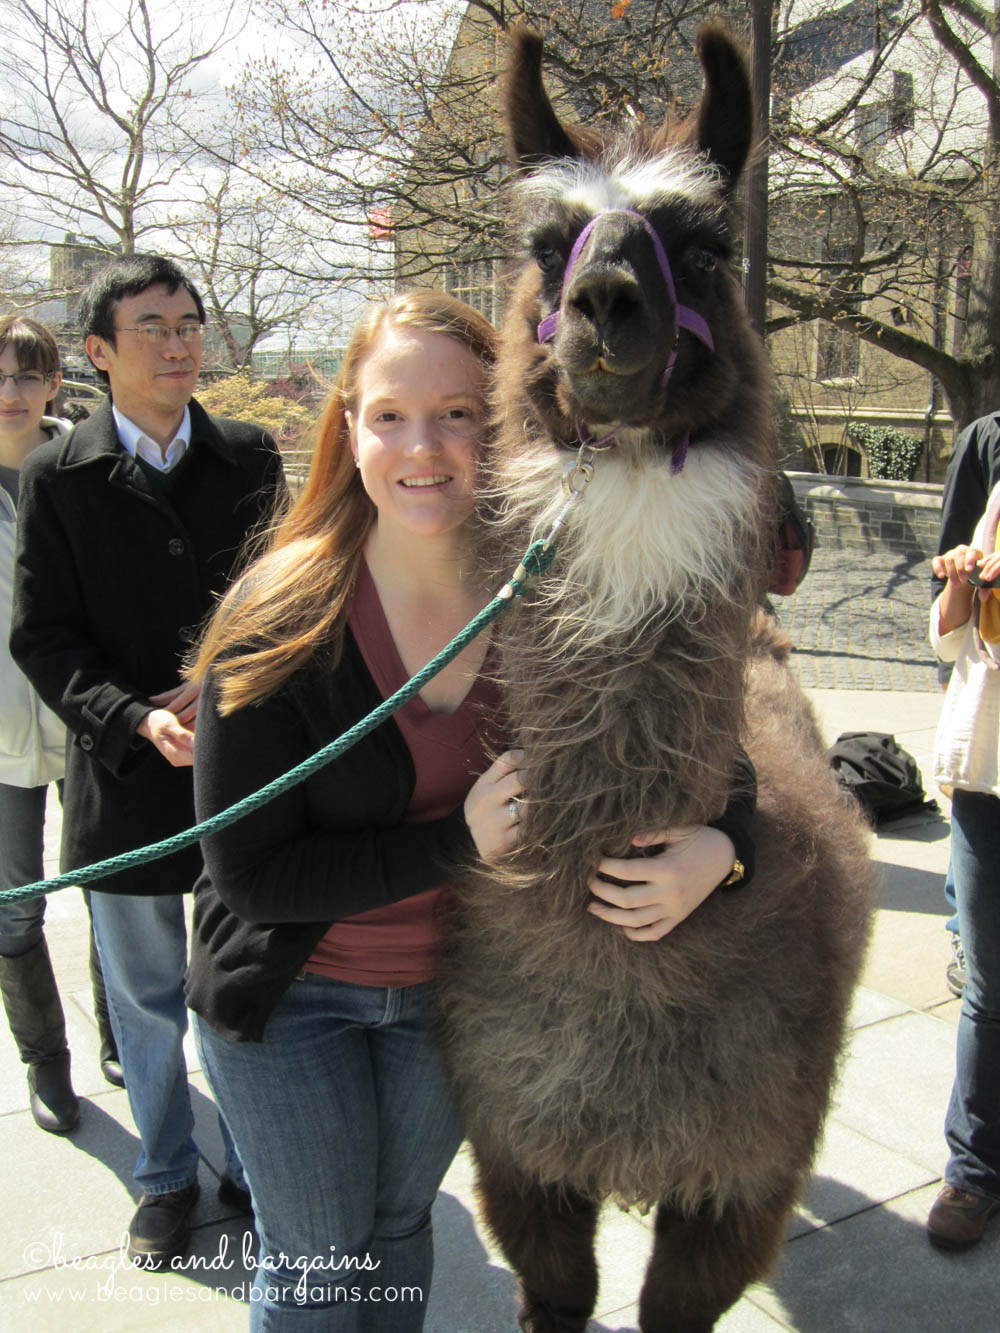 8 Photos of Happiness - Llamas